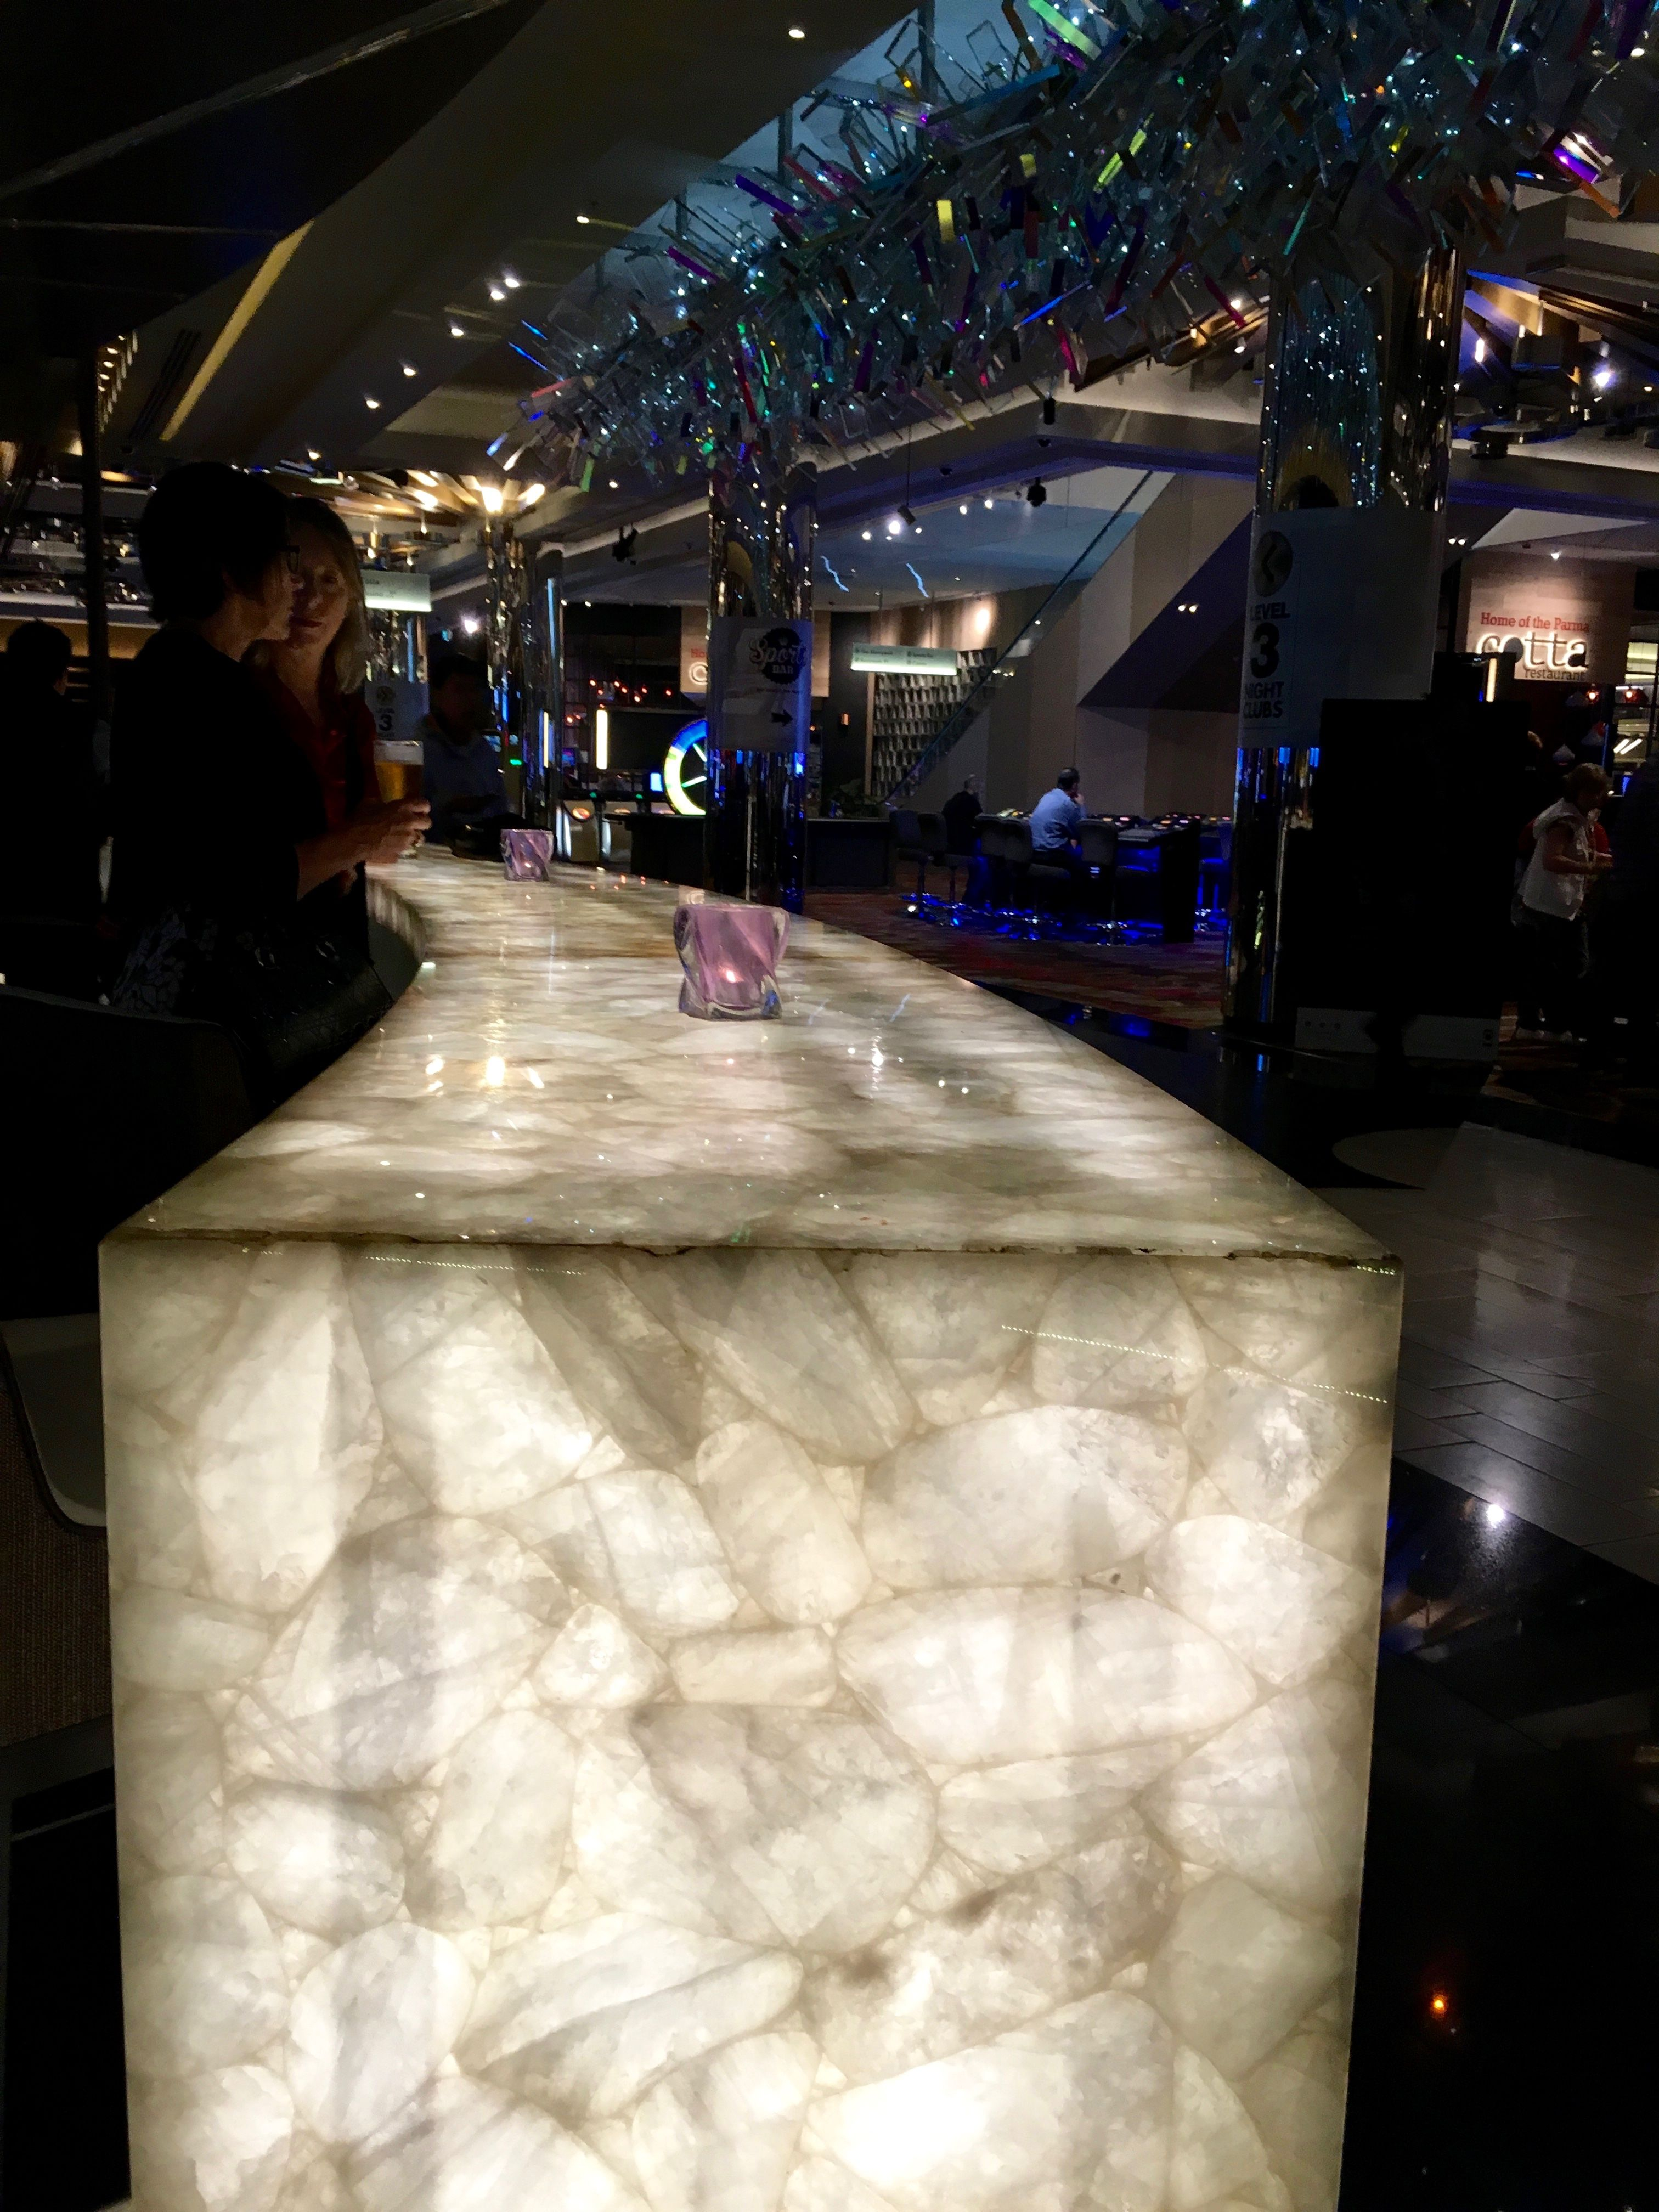 Quartz 8410 seattle granite countertops marble countertops quartz - 17 Best Images About Gemstone Surfaces On Pinterest Modern Home Bar Gemstones And Agate Stone